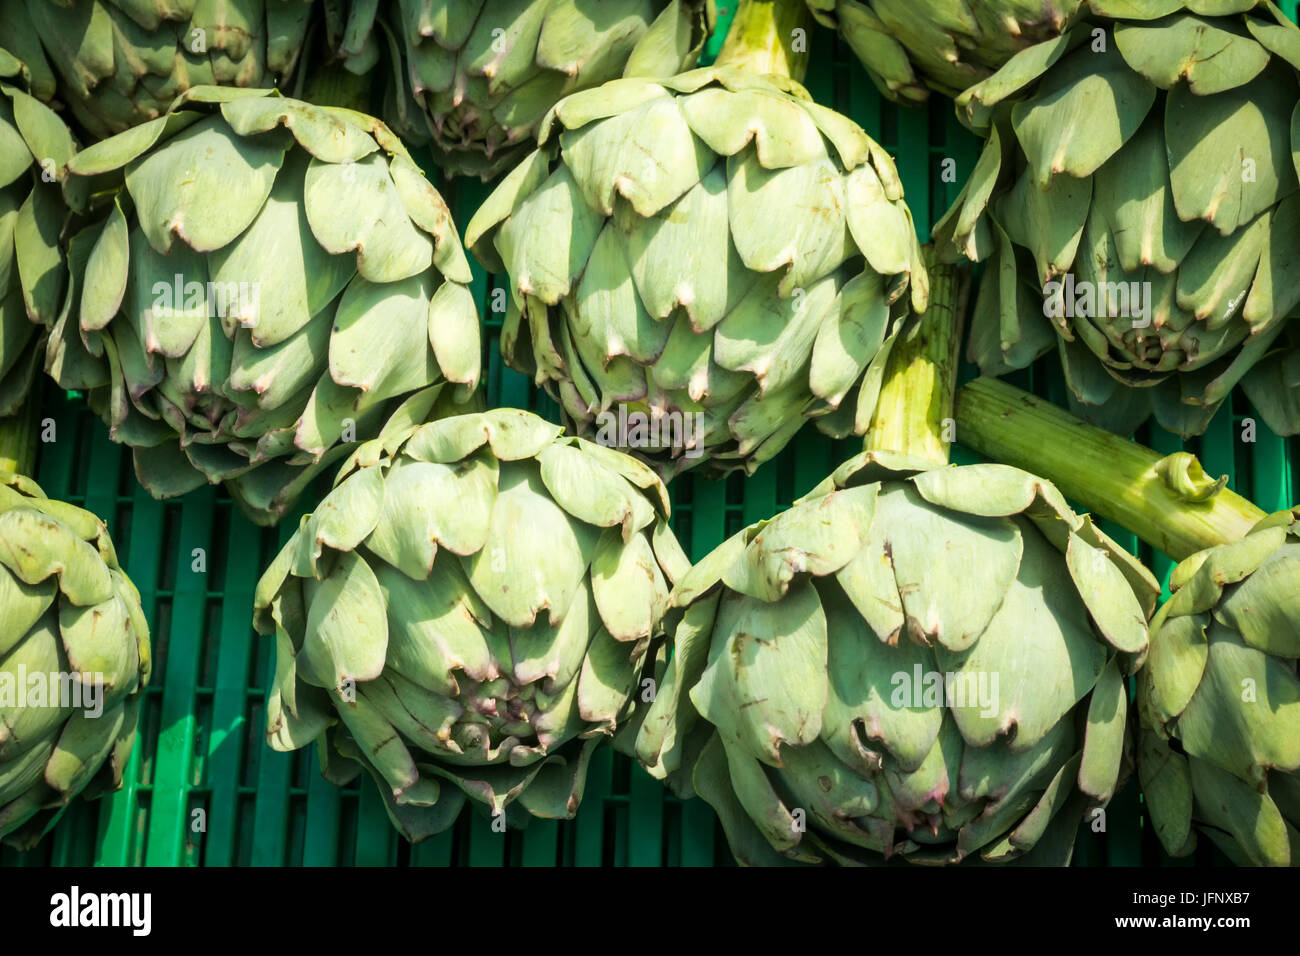 Artichokes on a market stall - Stock Image